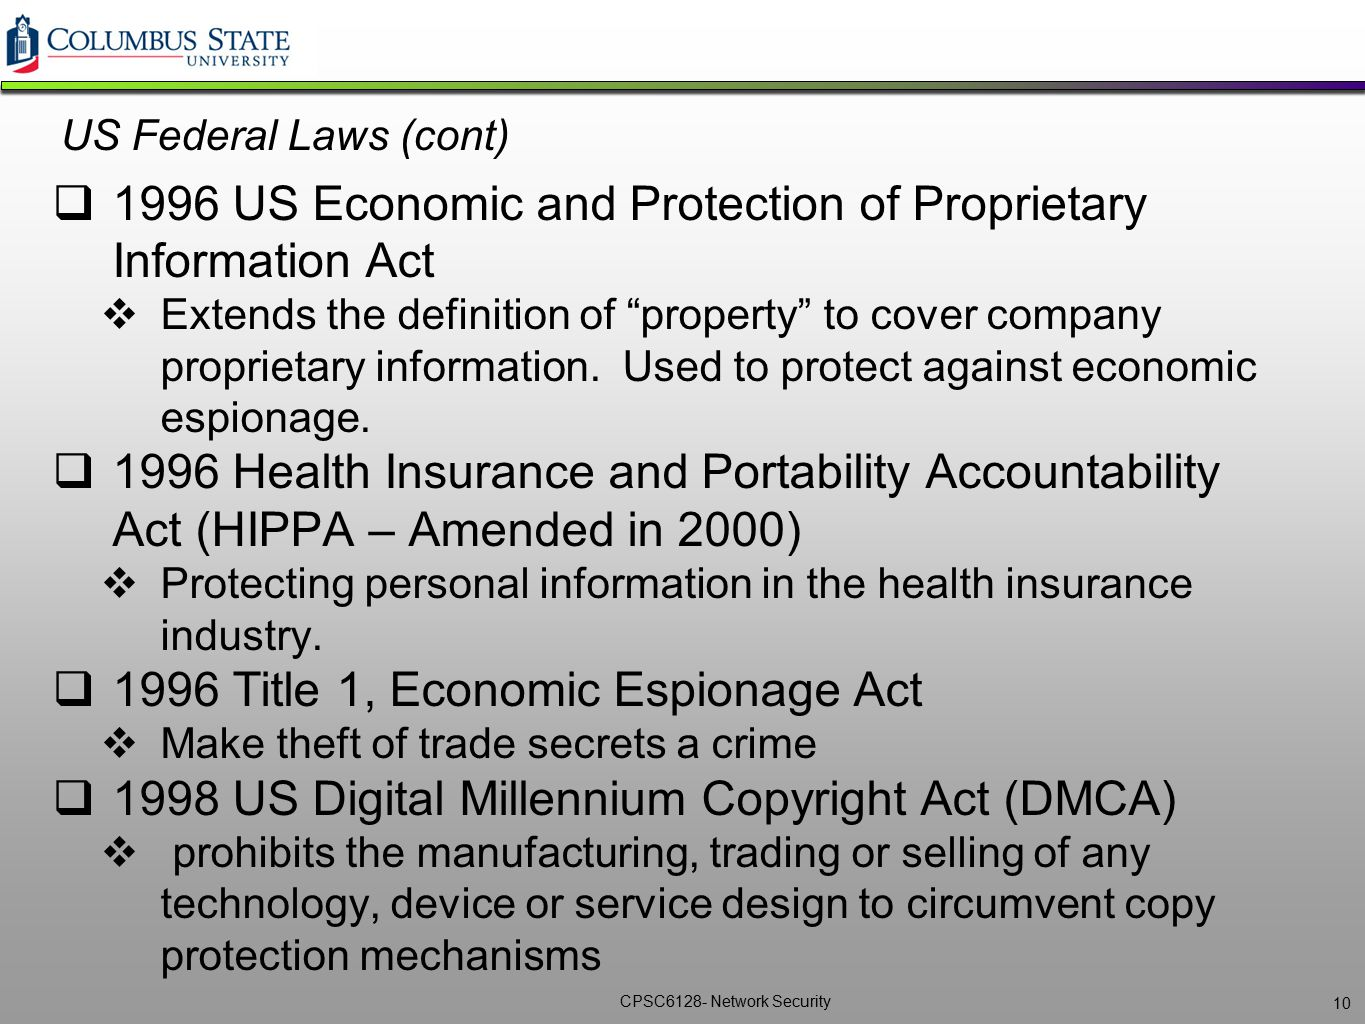 1996 US Economic and Protection of Proprietary Information Act